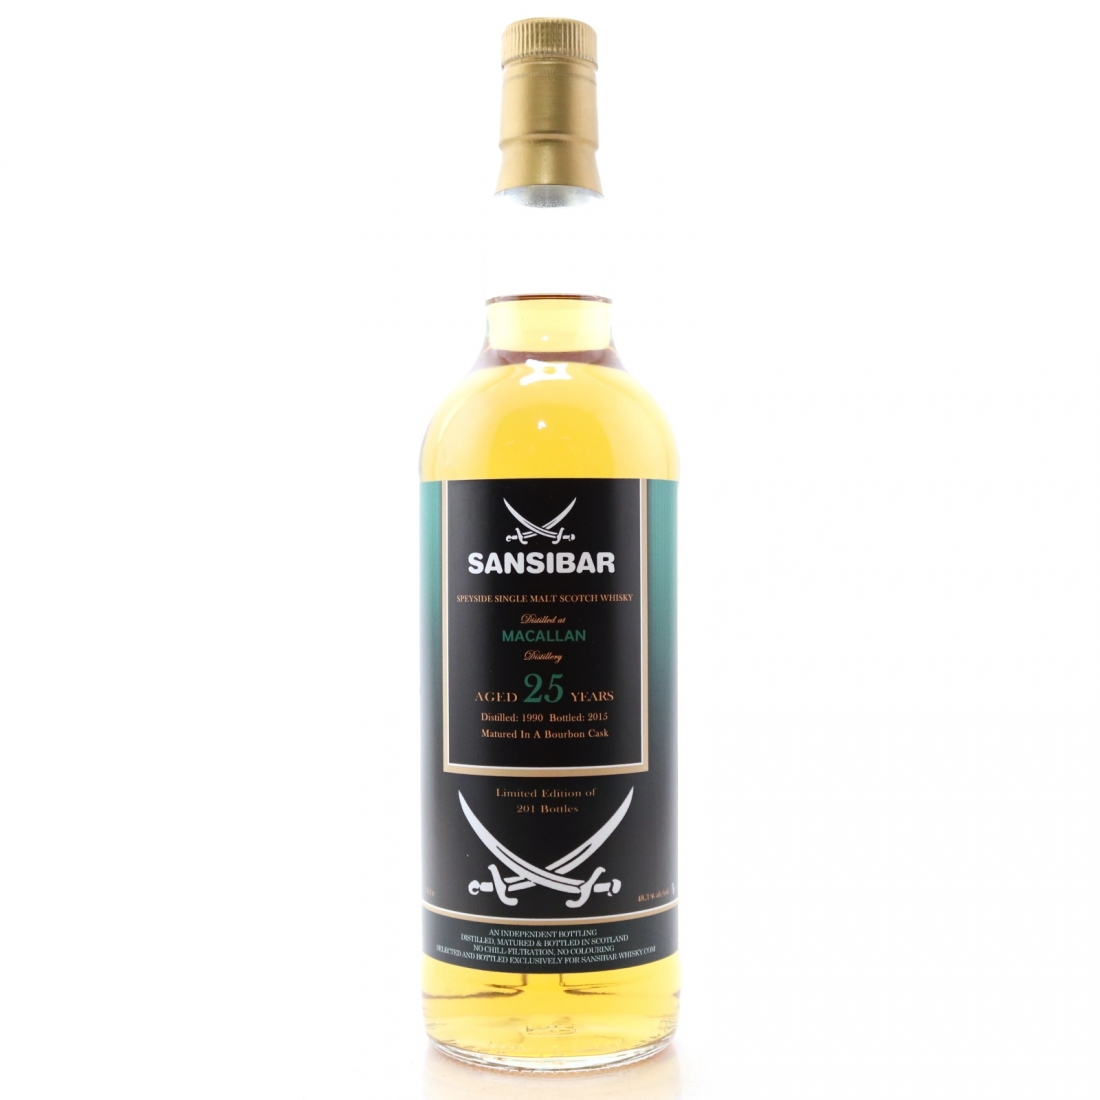 Macallan 1989 Sansibar 25 Year Old / Spirits Shop' Selection